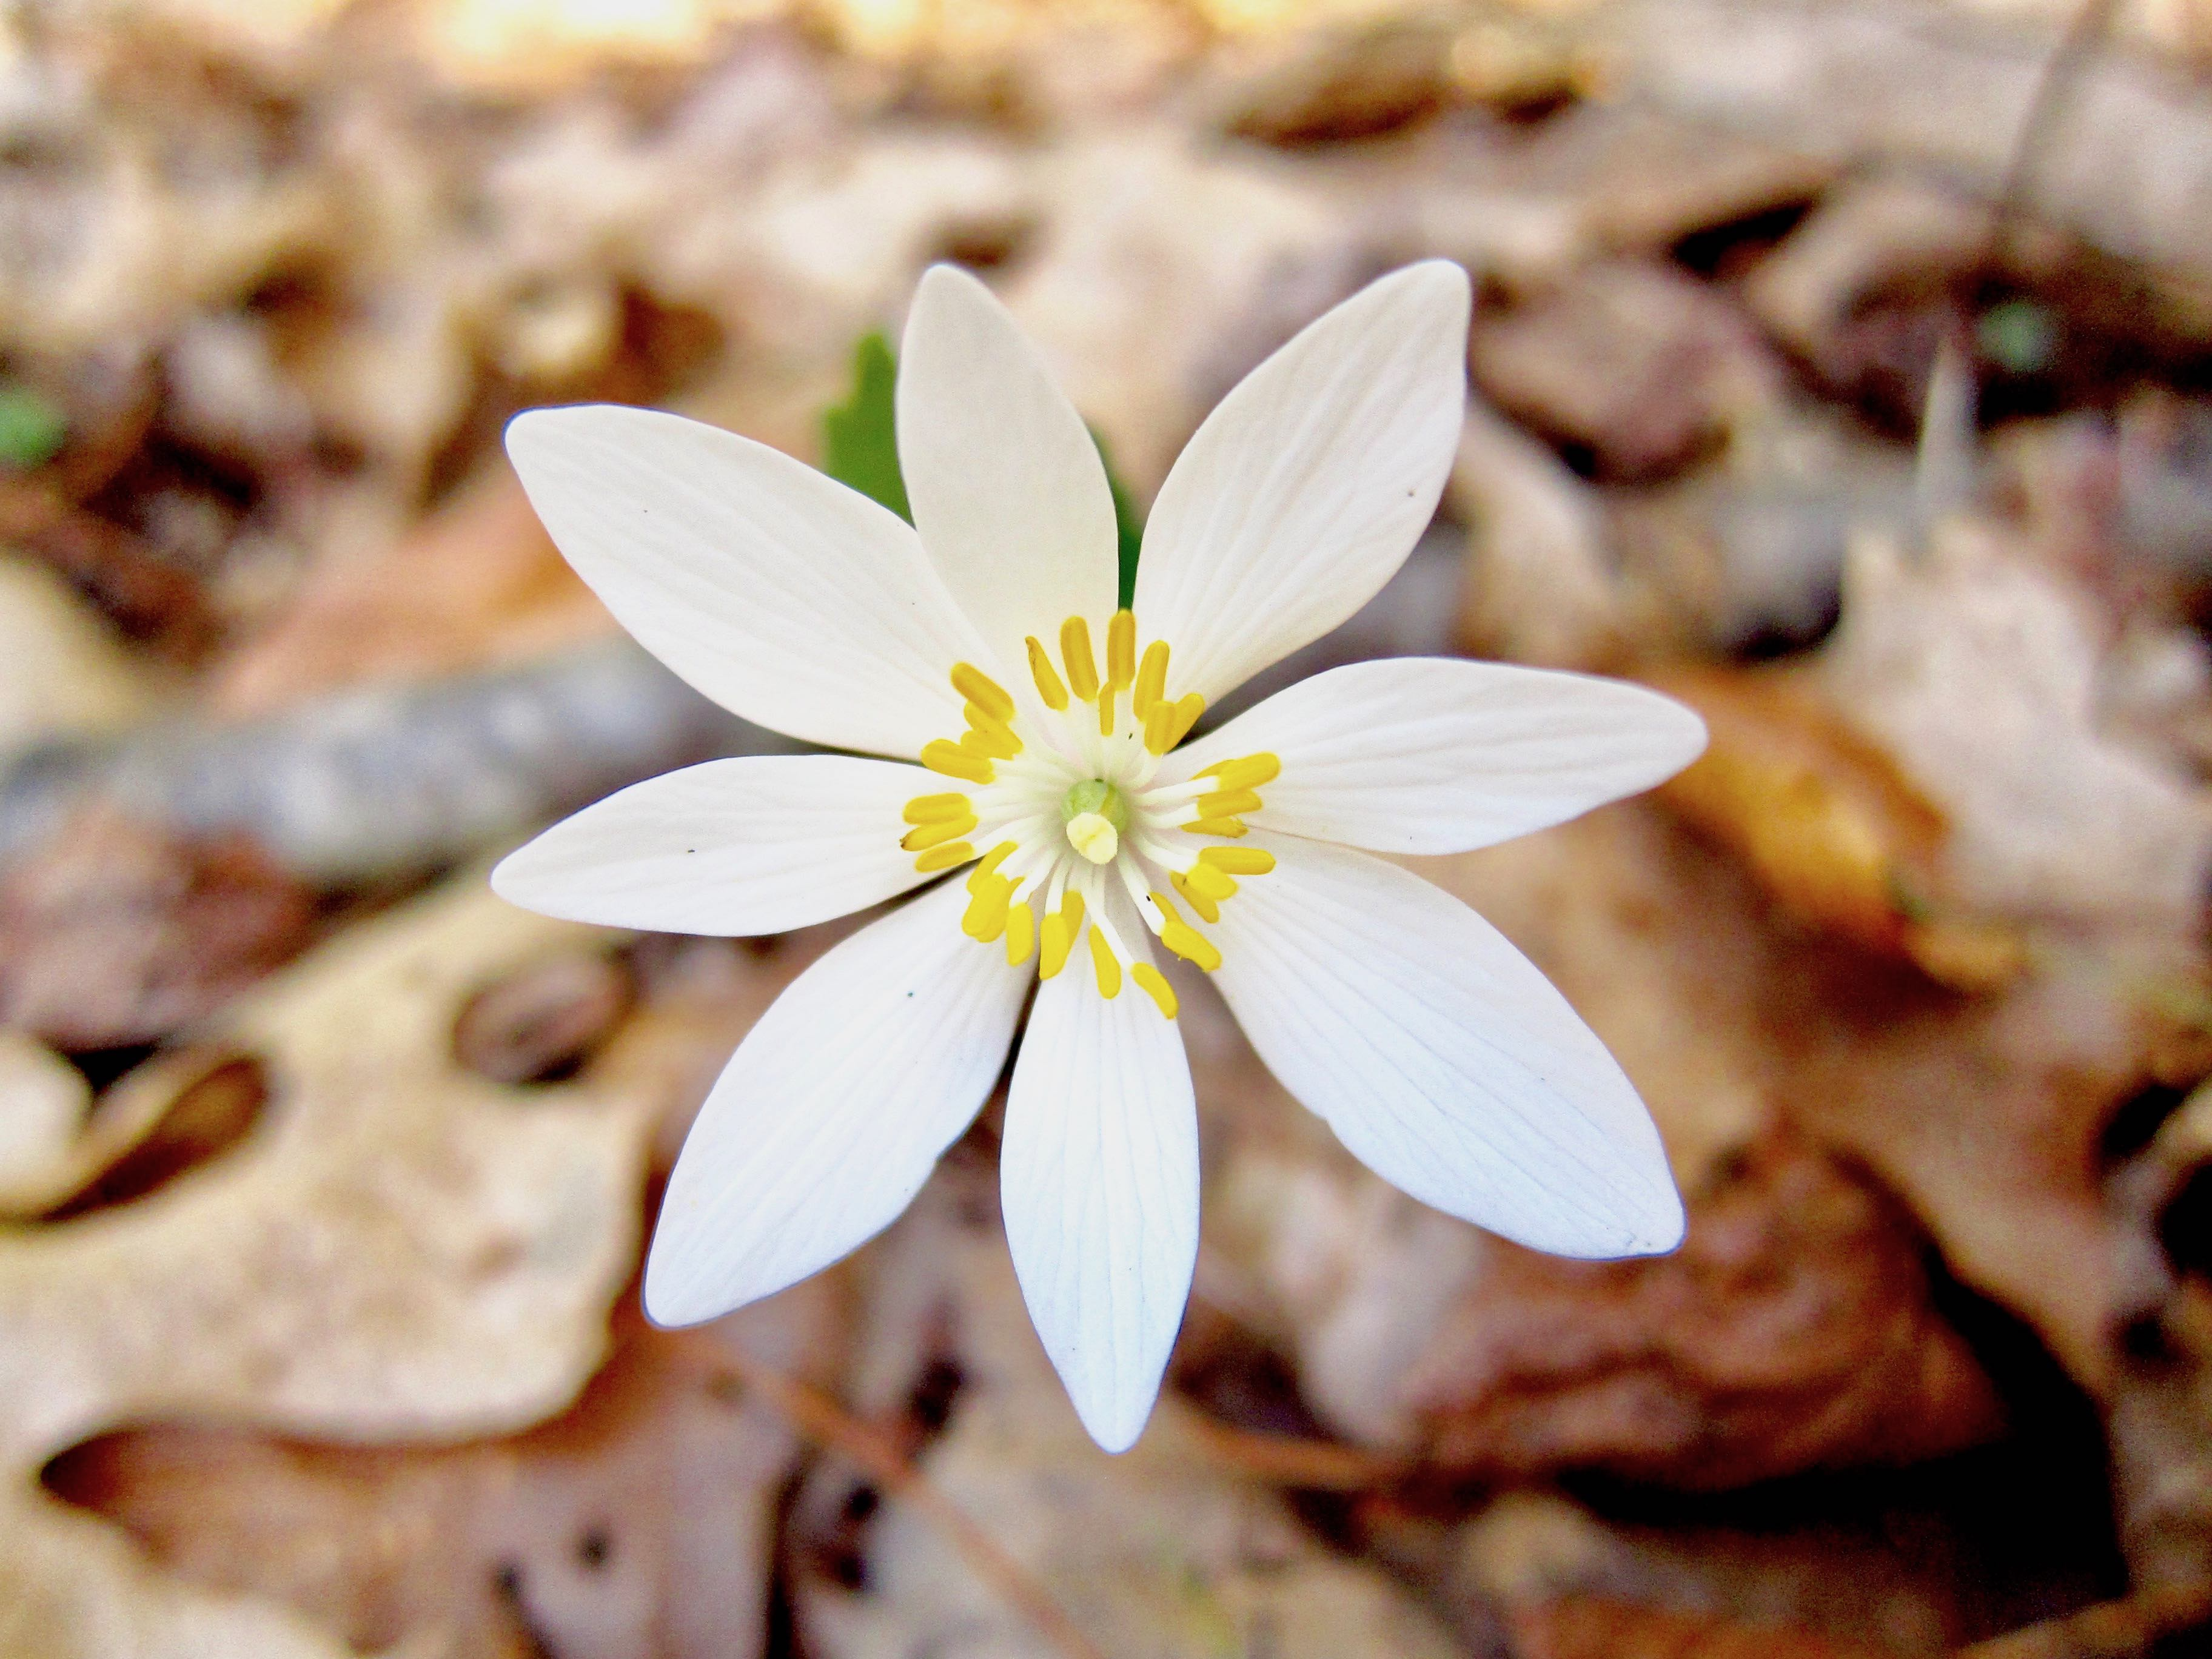 The Scientific Name is Sanguinaria canadensis. You will likely hear them called Bloodroot, Red Puccoon. This picture shows the Full Bloom in early April of Sanguinaria canadensis